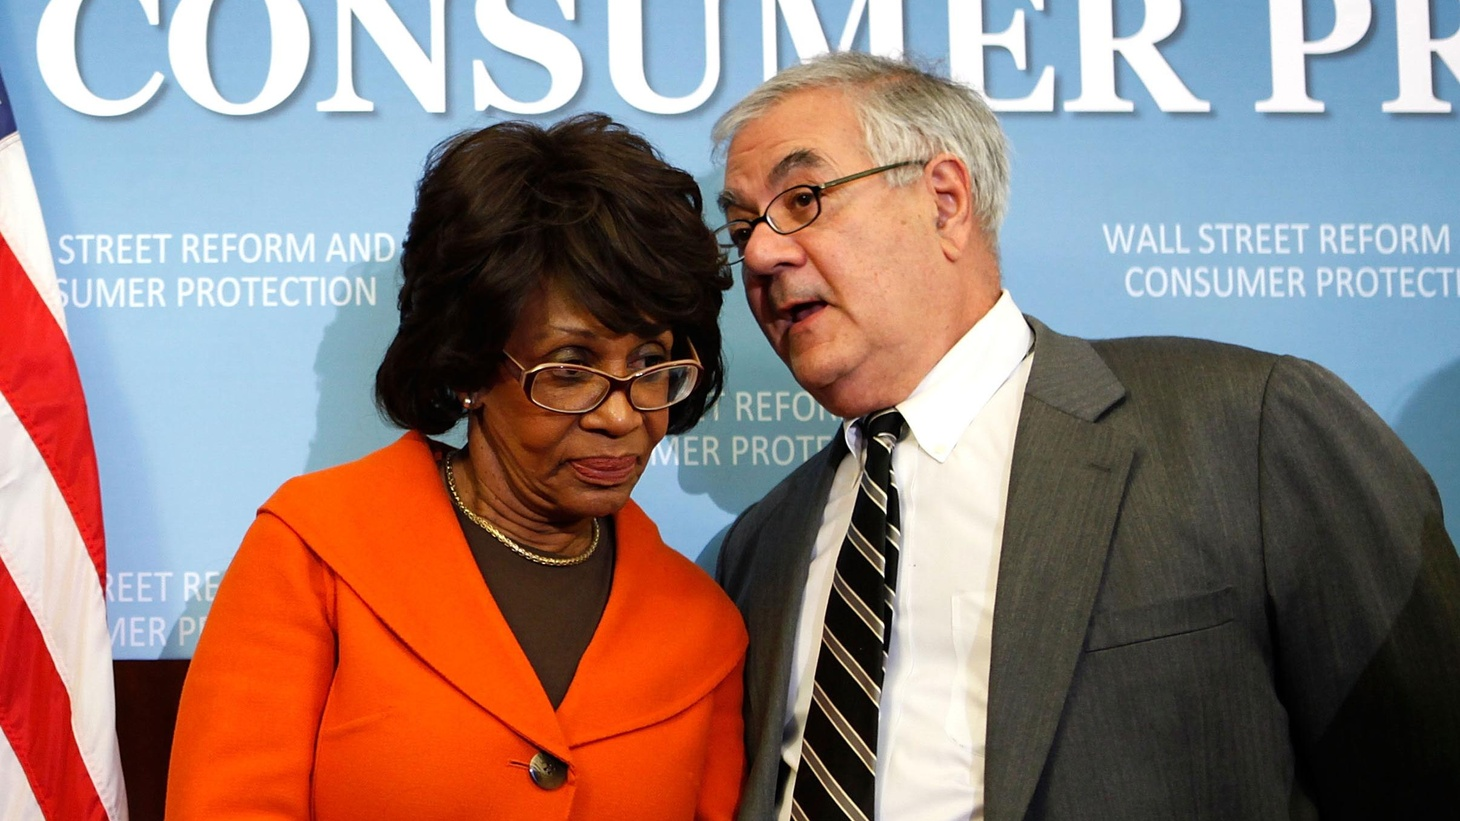 Los Angeles Democrat Maxine Waters faces charges from the House Ethics Committee, and she's demanding that the charges against her be made public now and that a hearing be held before the November election. We hear from the Congresswoman herself and about the preliminary report that led to the charges. Also, $1.3 billion in federal aid may be coming to California after all. On our rebroadcast of To the Point, same-sex marriage, healthcare reform and immigration.